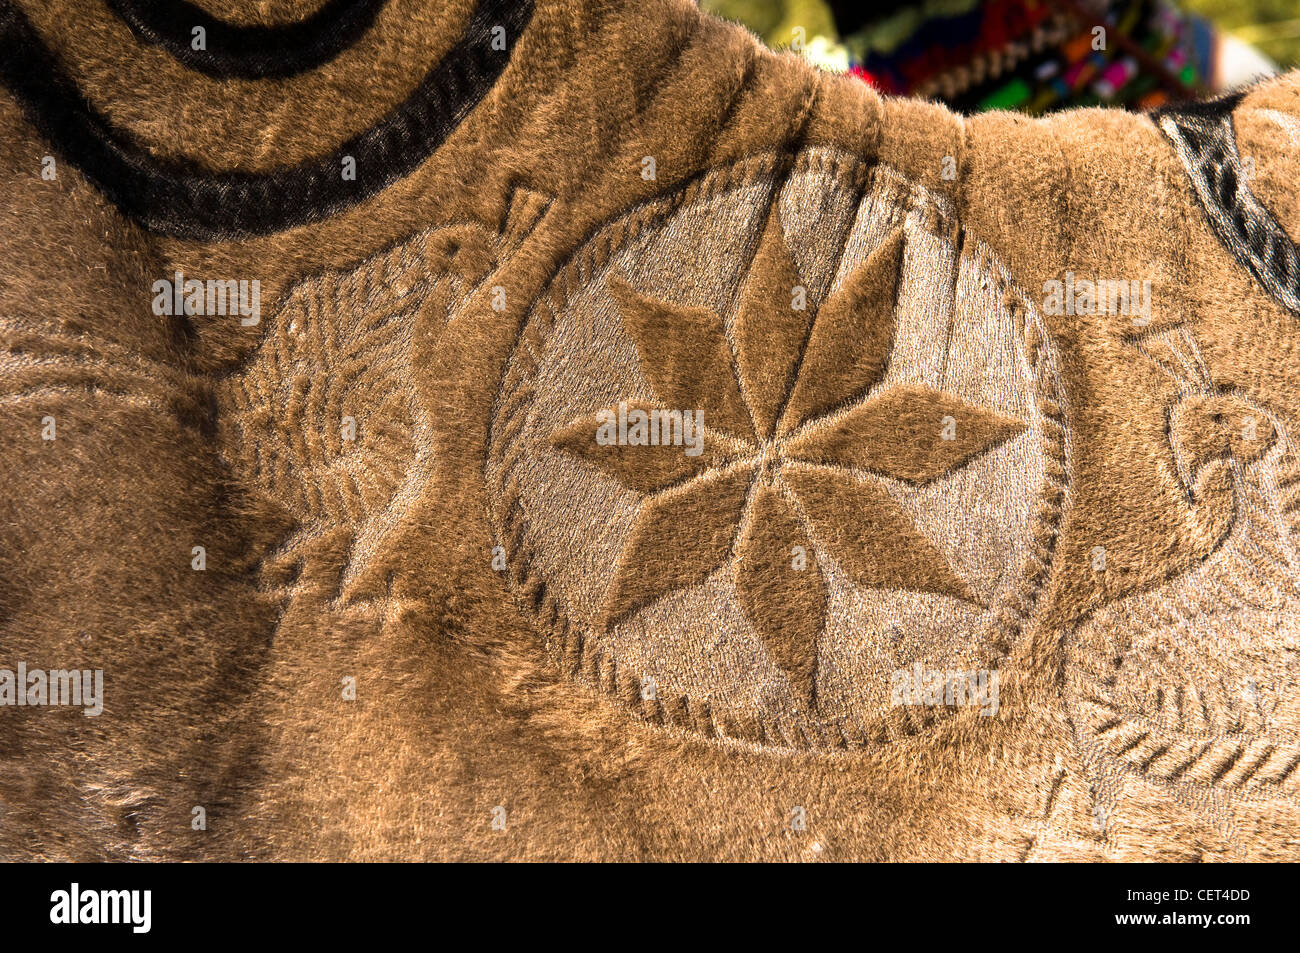 Beautiful patterns decorating a camel in the Thar desert in India. - Stock Image